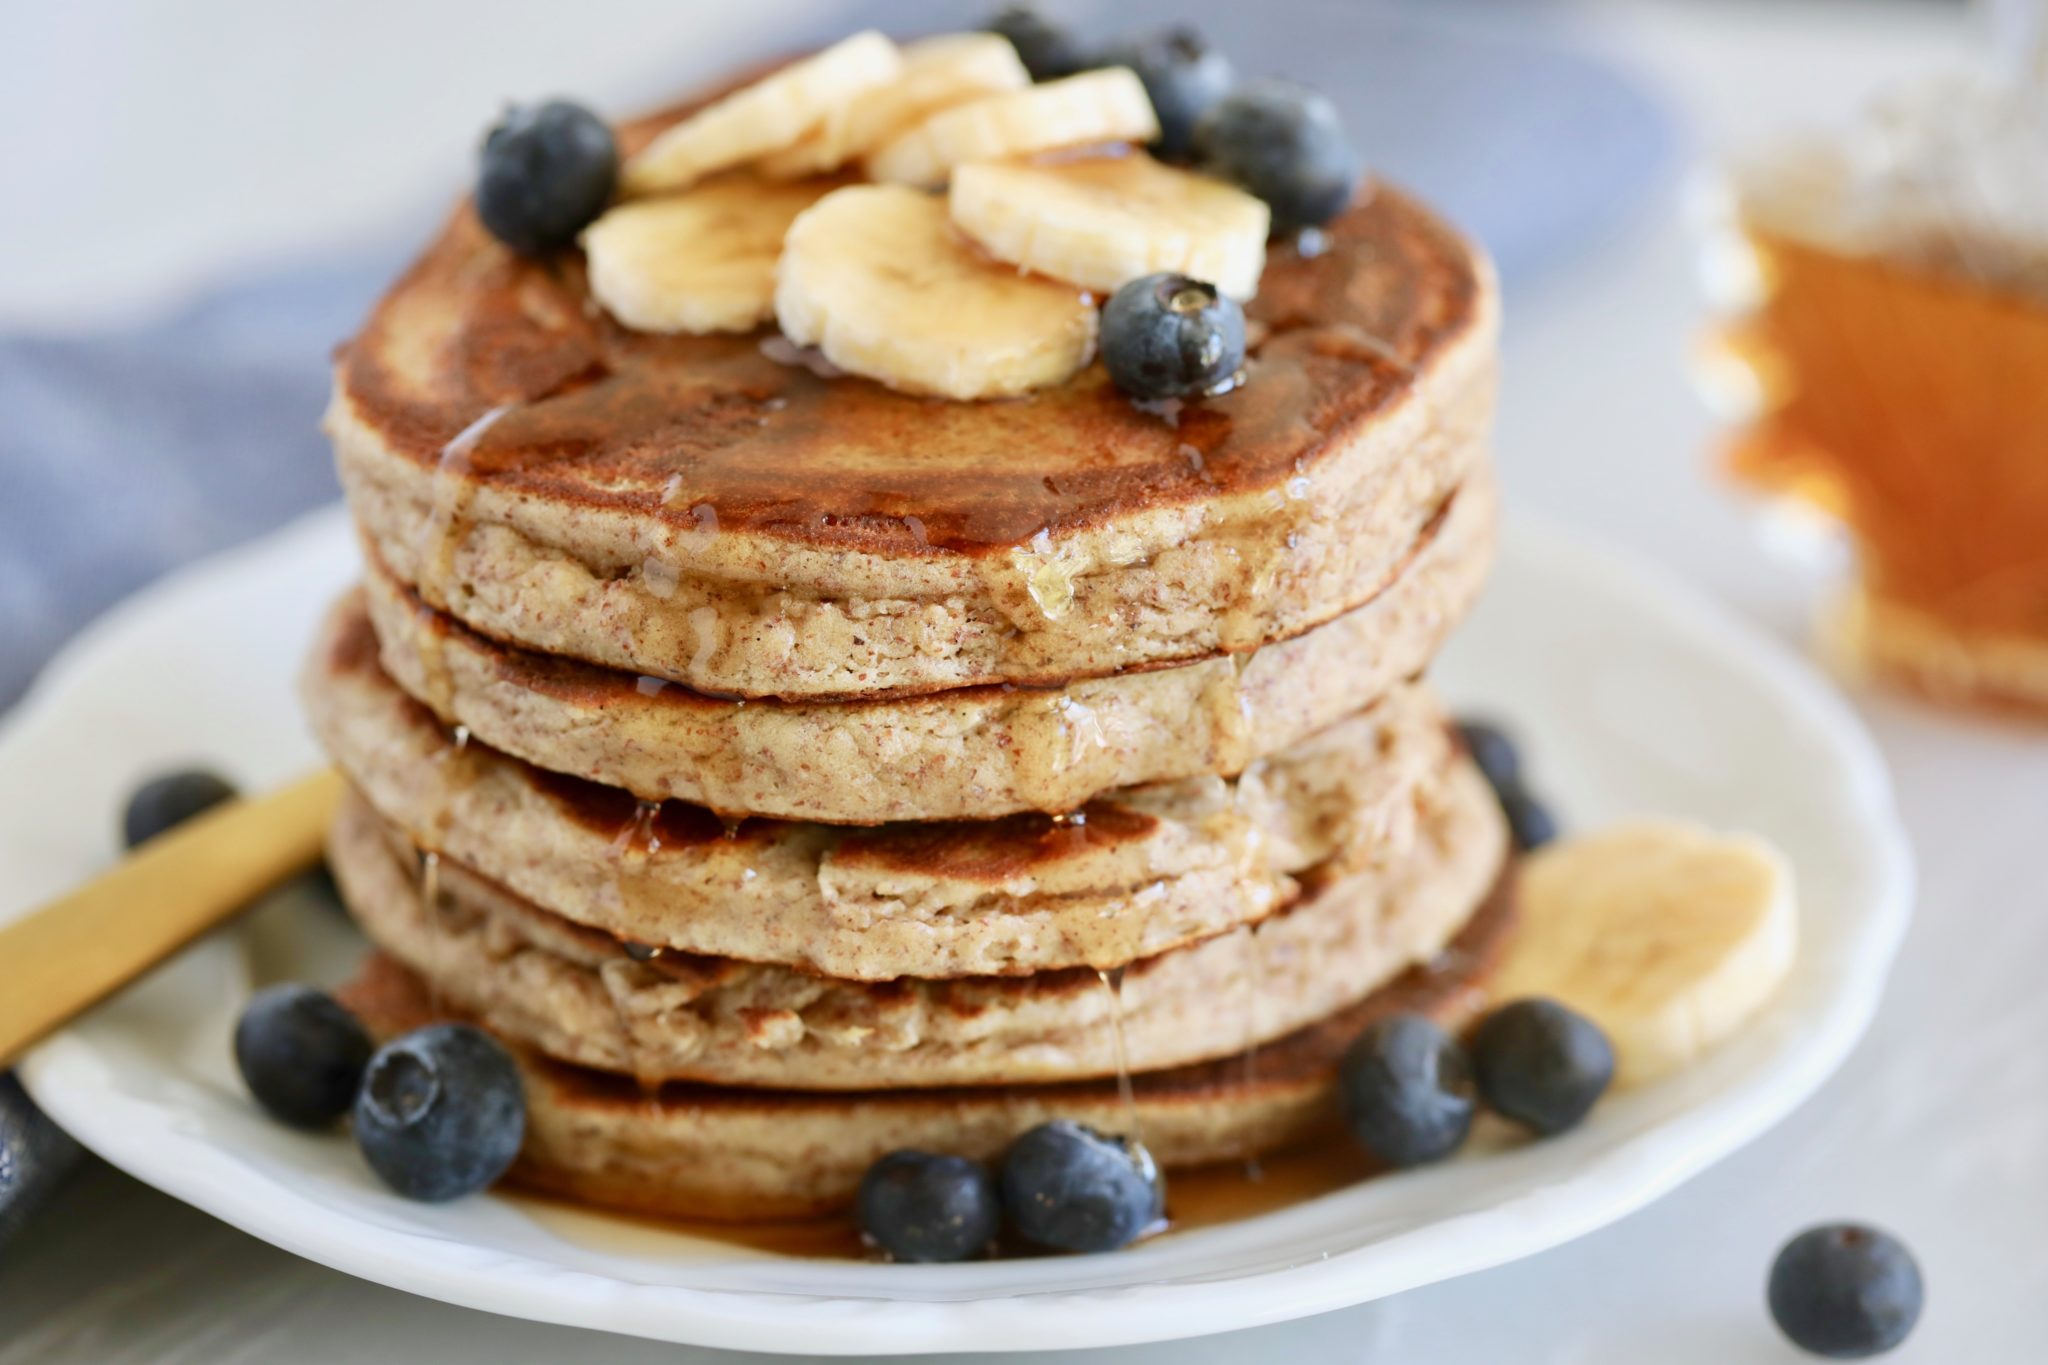 gluten free pancakes, paleo pancakes, gluten free pancakes recipe, paleo pancake recipe, paleo pancake mix best paleo pancakes, gluten free pancakes mix, paleo banana pancakes, how to make gluten free pancakes, gluten free pancakes help, homemade gluten free pancakes, homemade paleo pancakes, bigger bolder baking